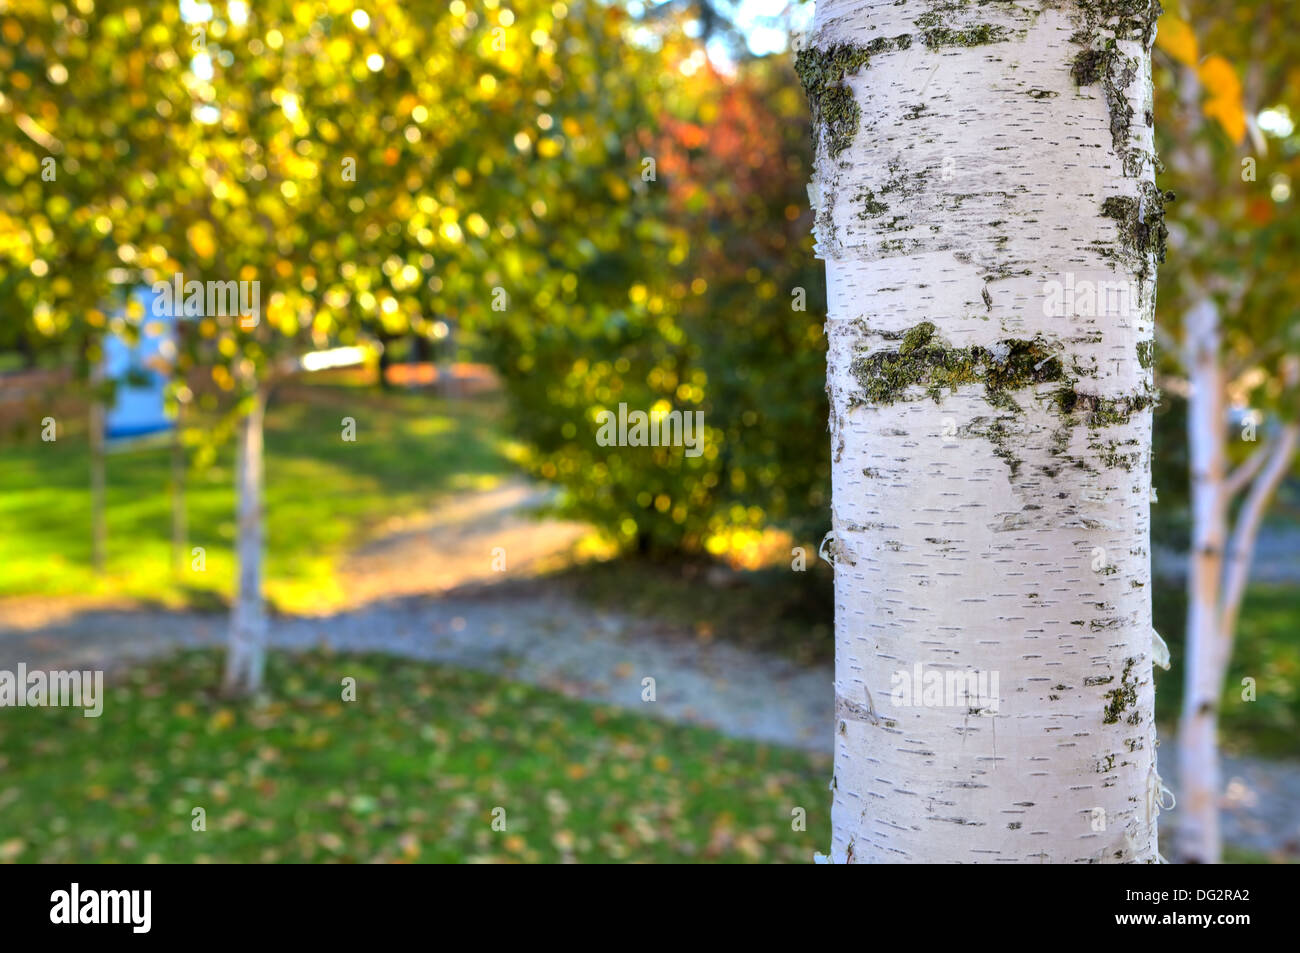 Close-up image of birch with white bark as green grass and trees with colorful yellow leaves blurred on background. - Stock Image